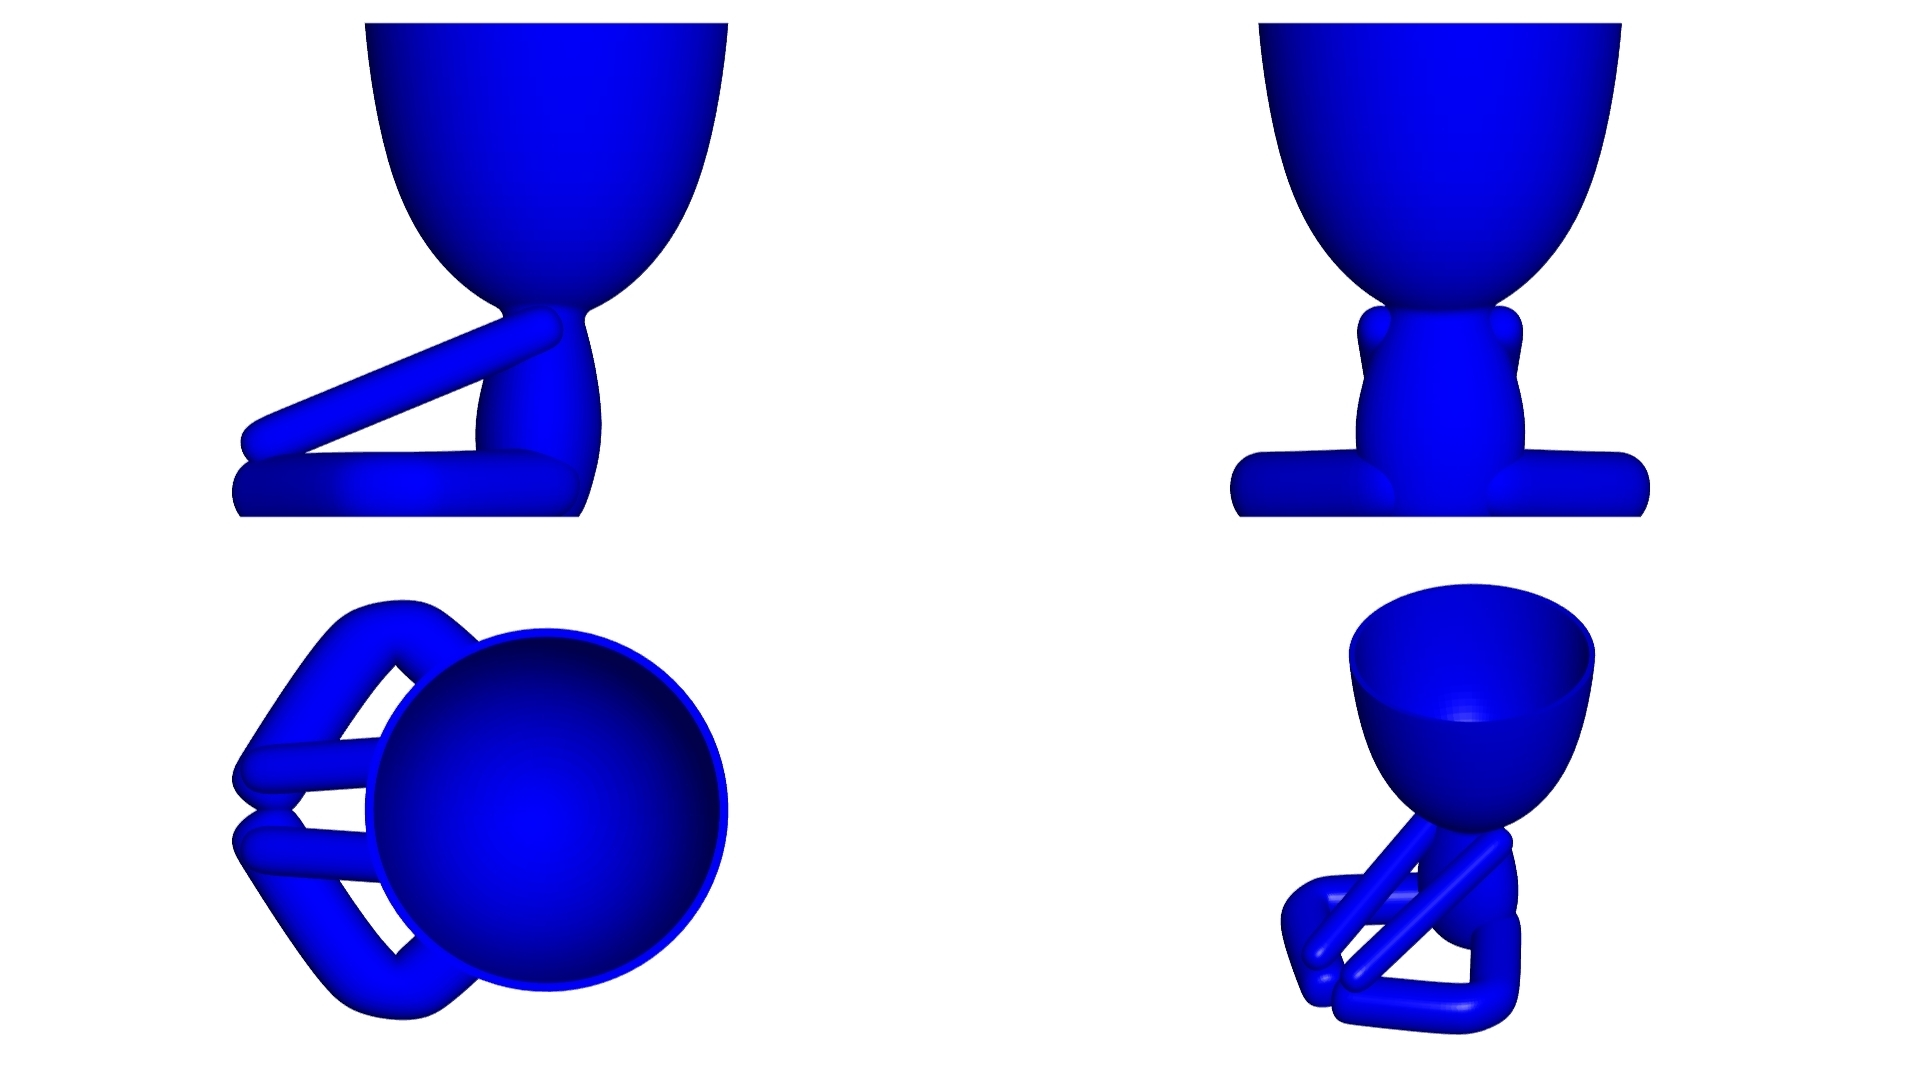 Vaso_12_Azul_2.jpg Download free STL file YOGA ESTIRANDO JARRÓN MACETA ROBERT 12 -  YOGA STRETCHING VASE FLOWERPOT ROBERT 12 • Template to 3D print, PRODUSTL56